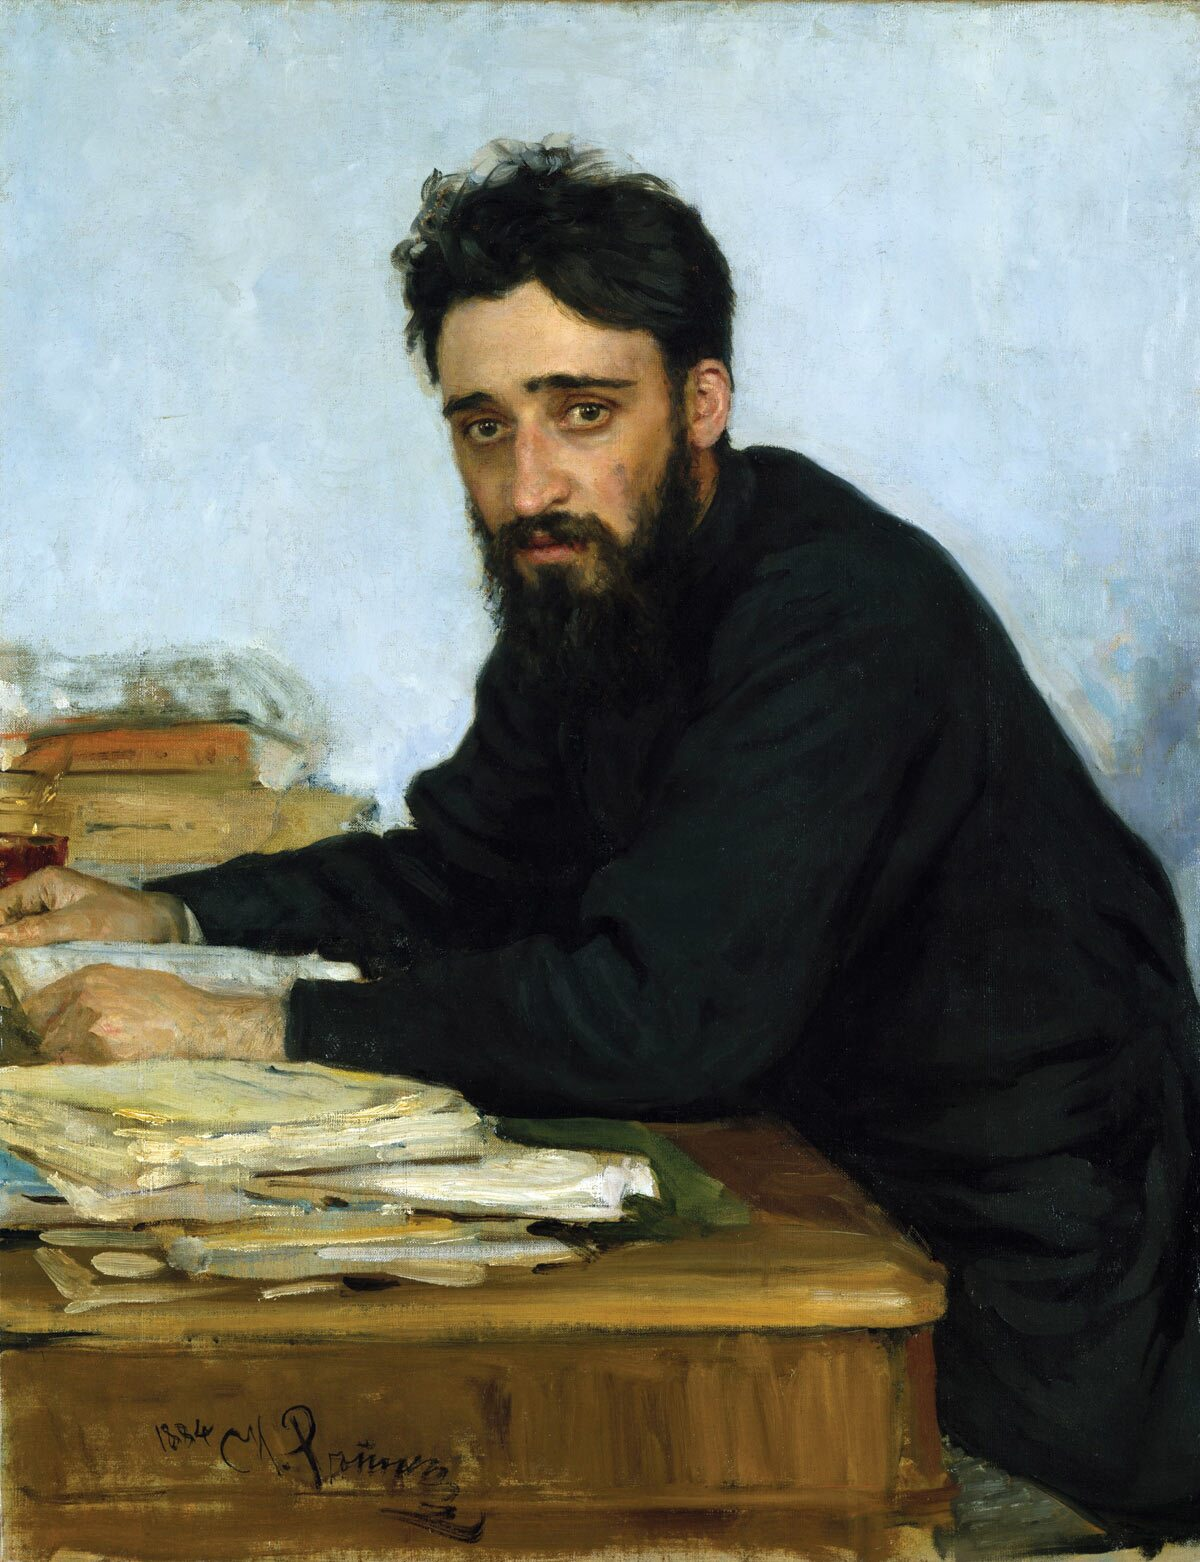 Vsevolod Garshin (painted by Ilya Repin in 1884) wrote with deep compassion and without sentimentality.